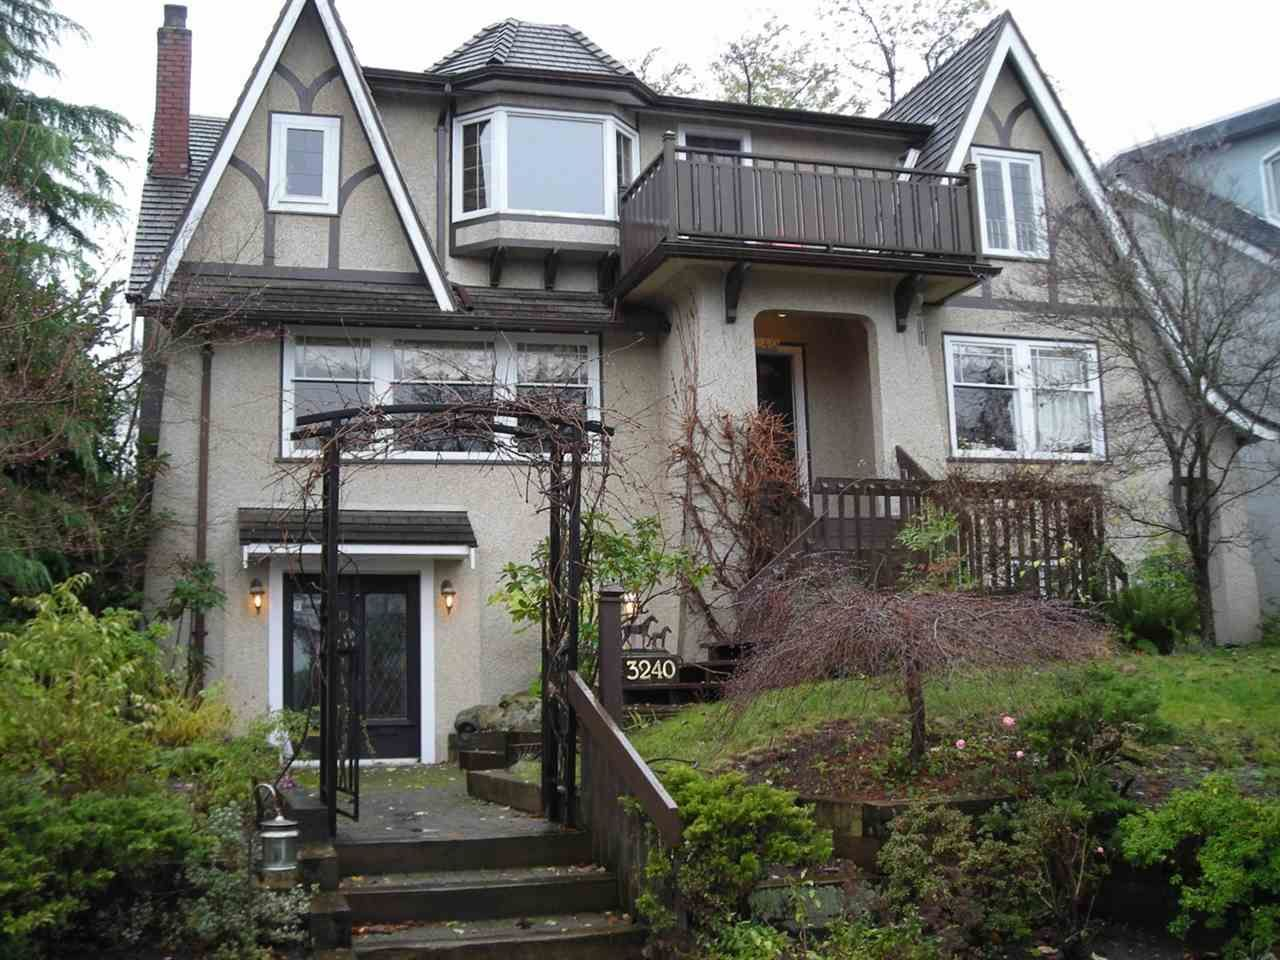 """Main Photo: 3240 W 21ST Avenue in Vancouver: Dunbar House for sale in """"Dunbar"""" (Vancouver West)  : MLS®# R2000254"""